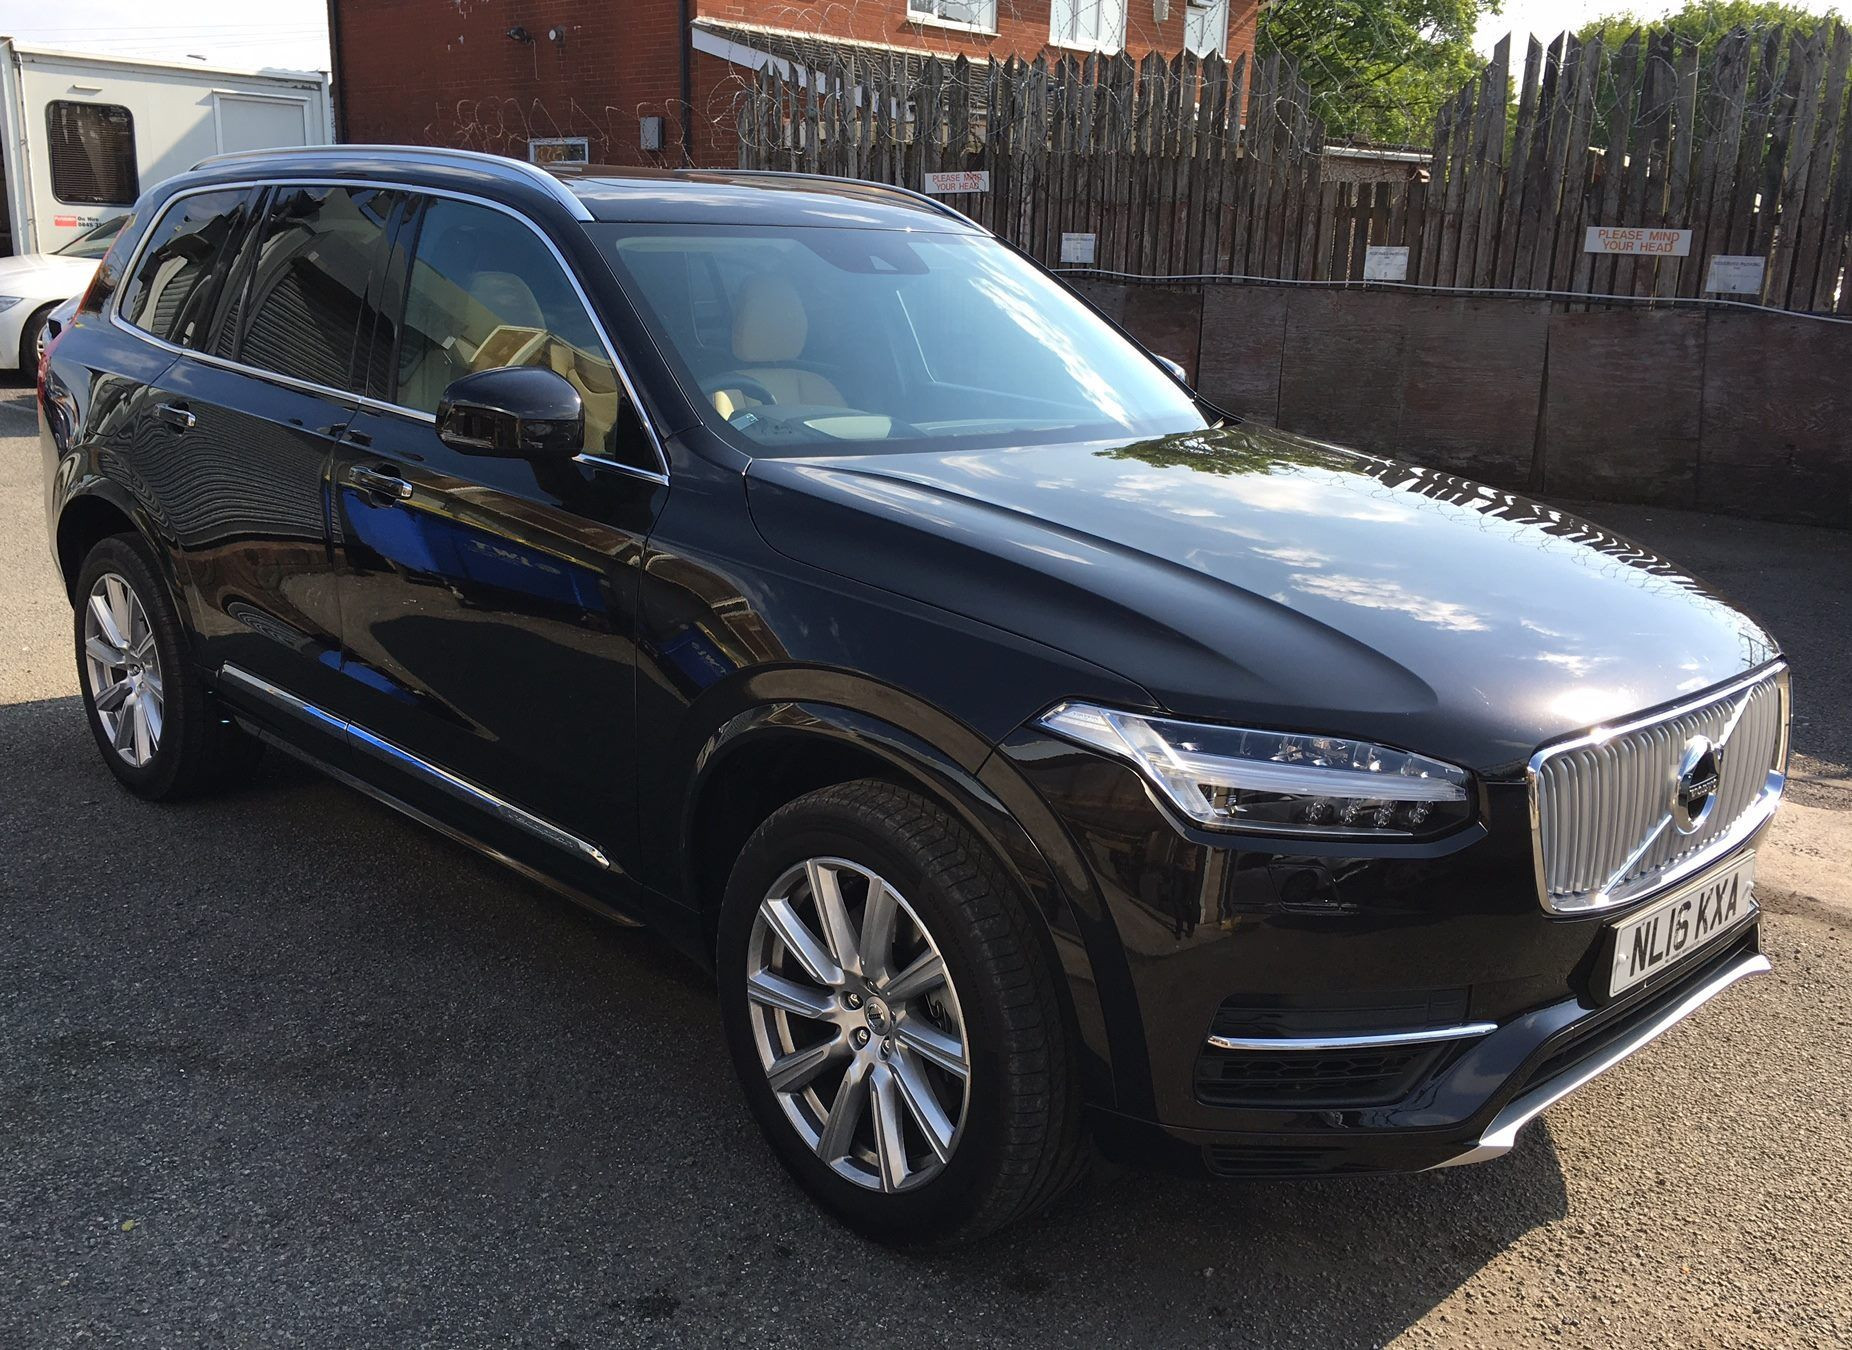 Business Lease Car Deals Xc90 Lease Deals Lamoureph Blog